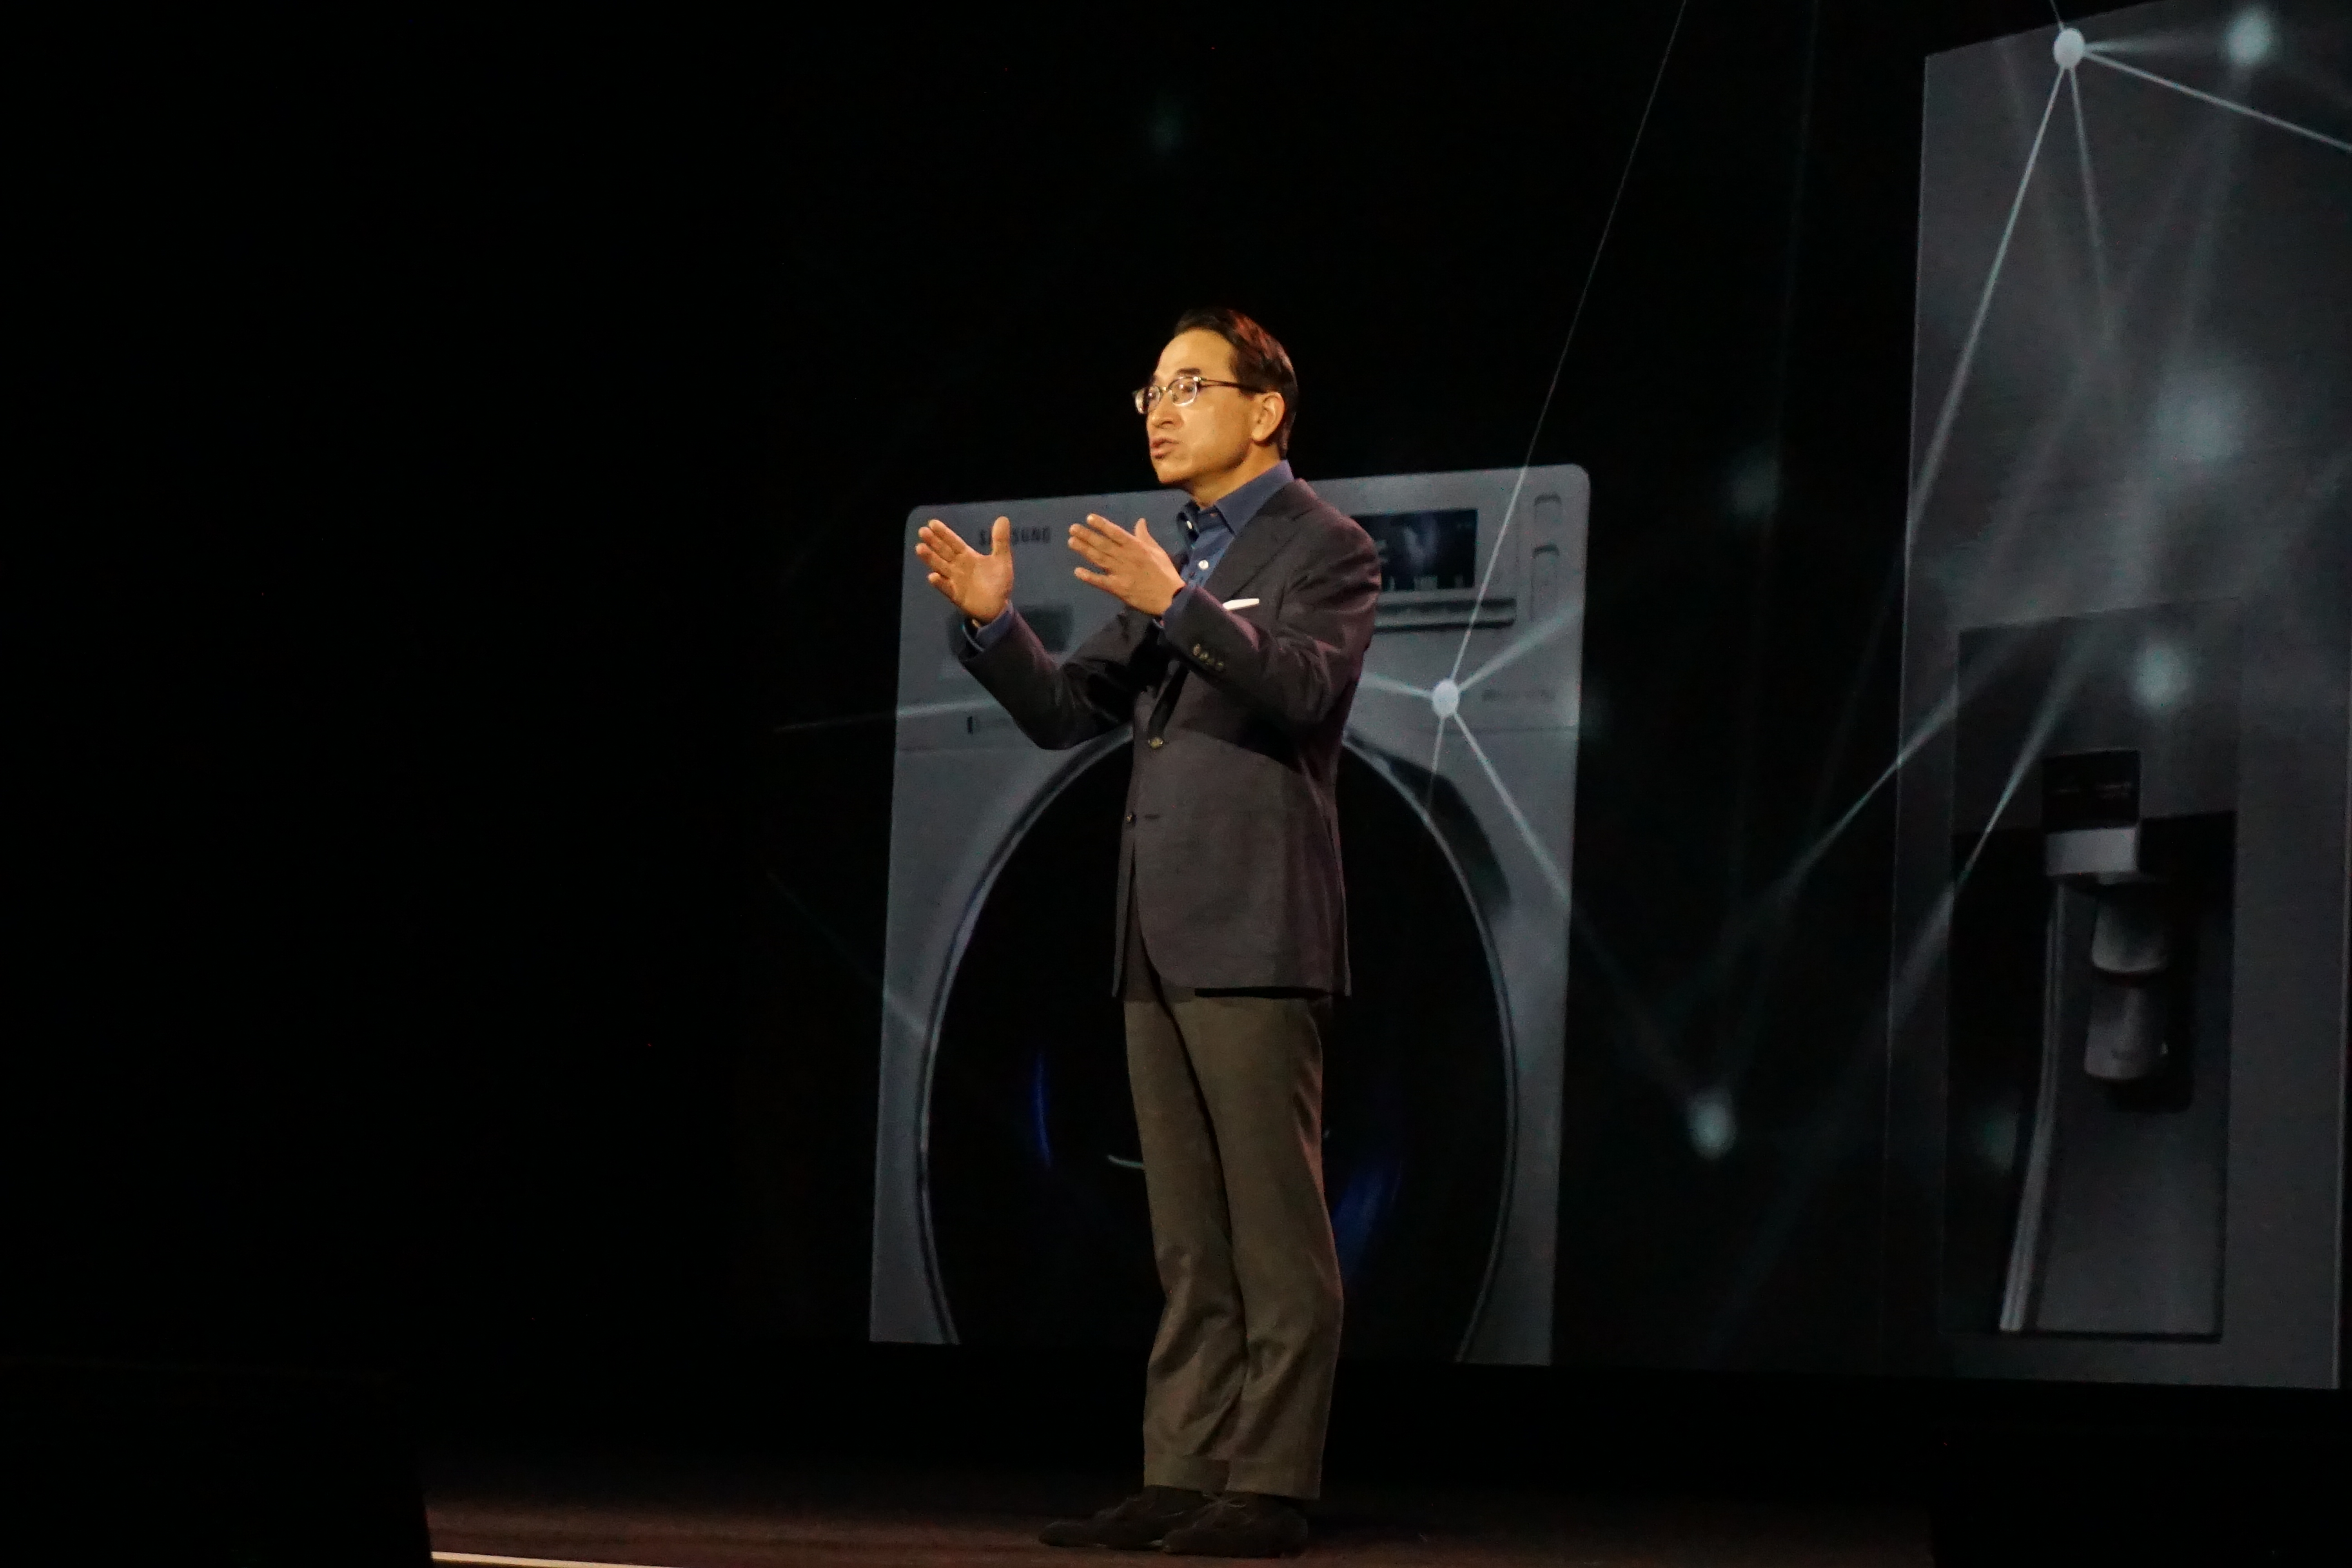 W.P. Hong, head of Samsung's IT business, talks up the Internet of Things during a keynote presentation at this year's CES confab.